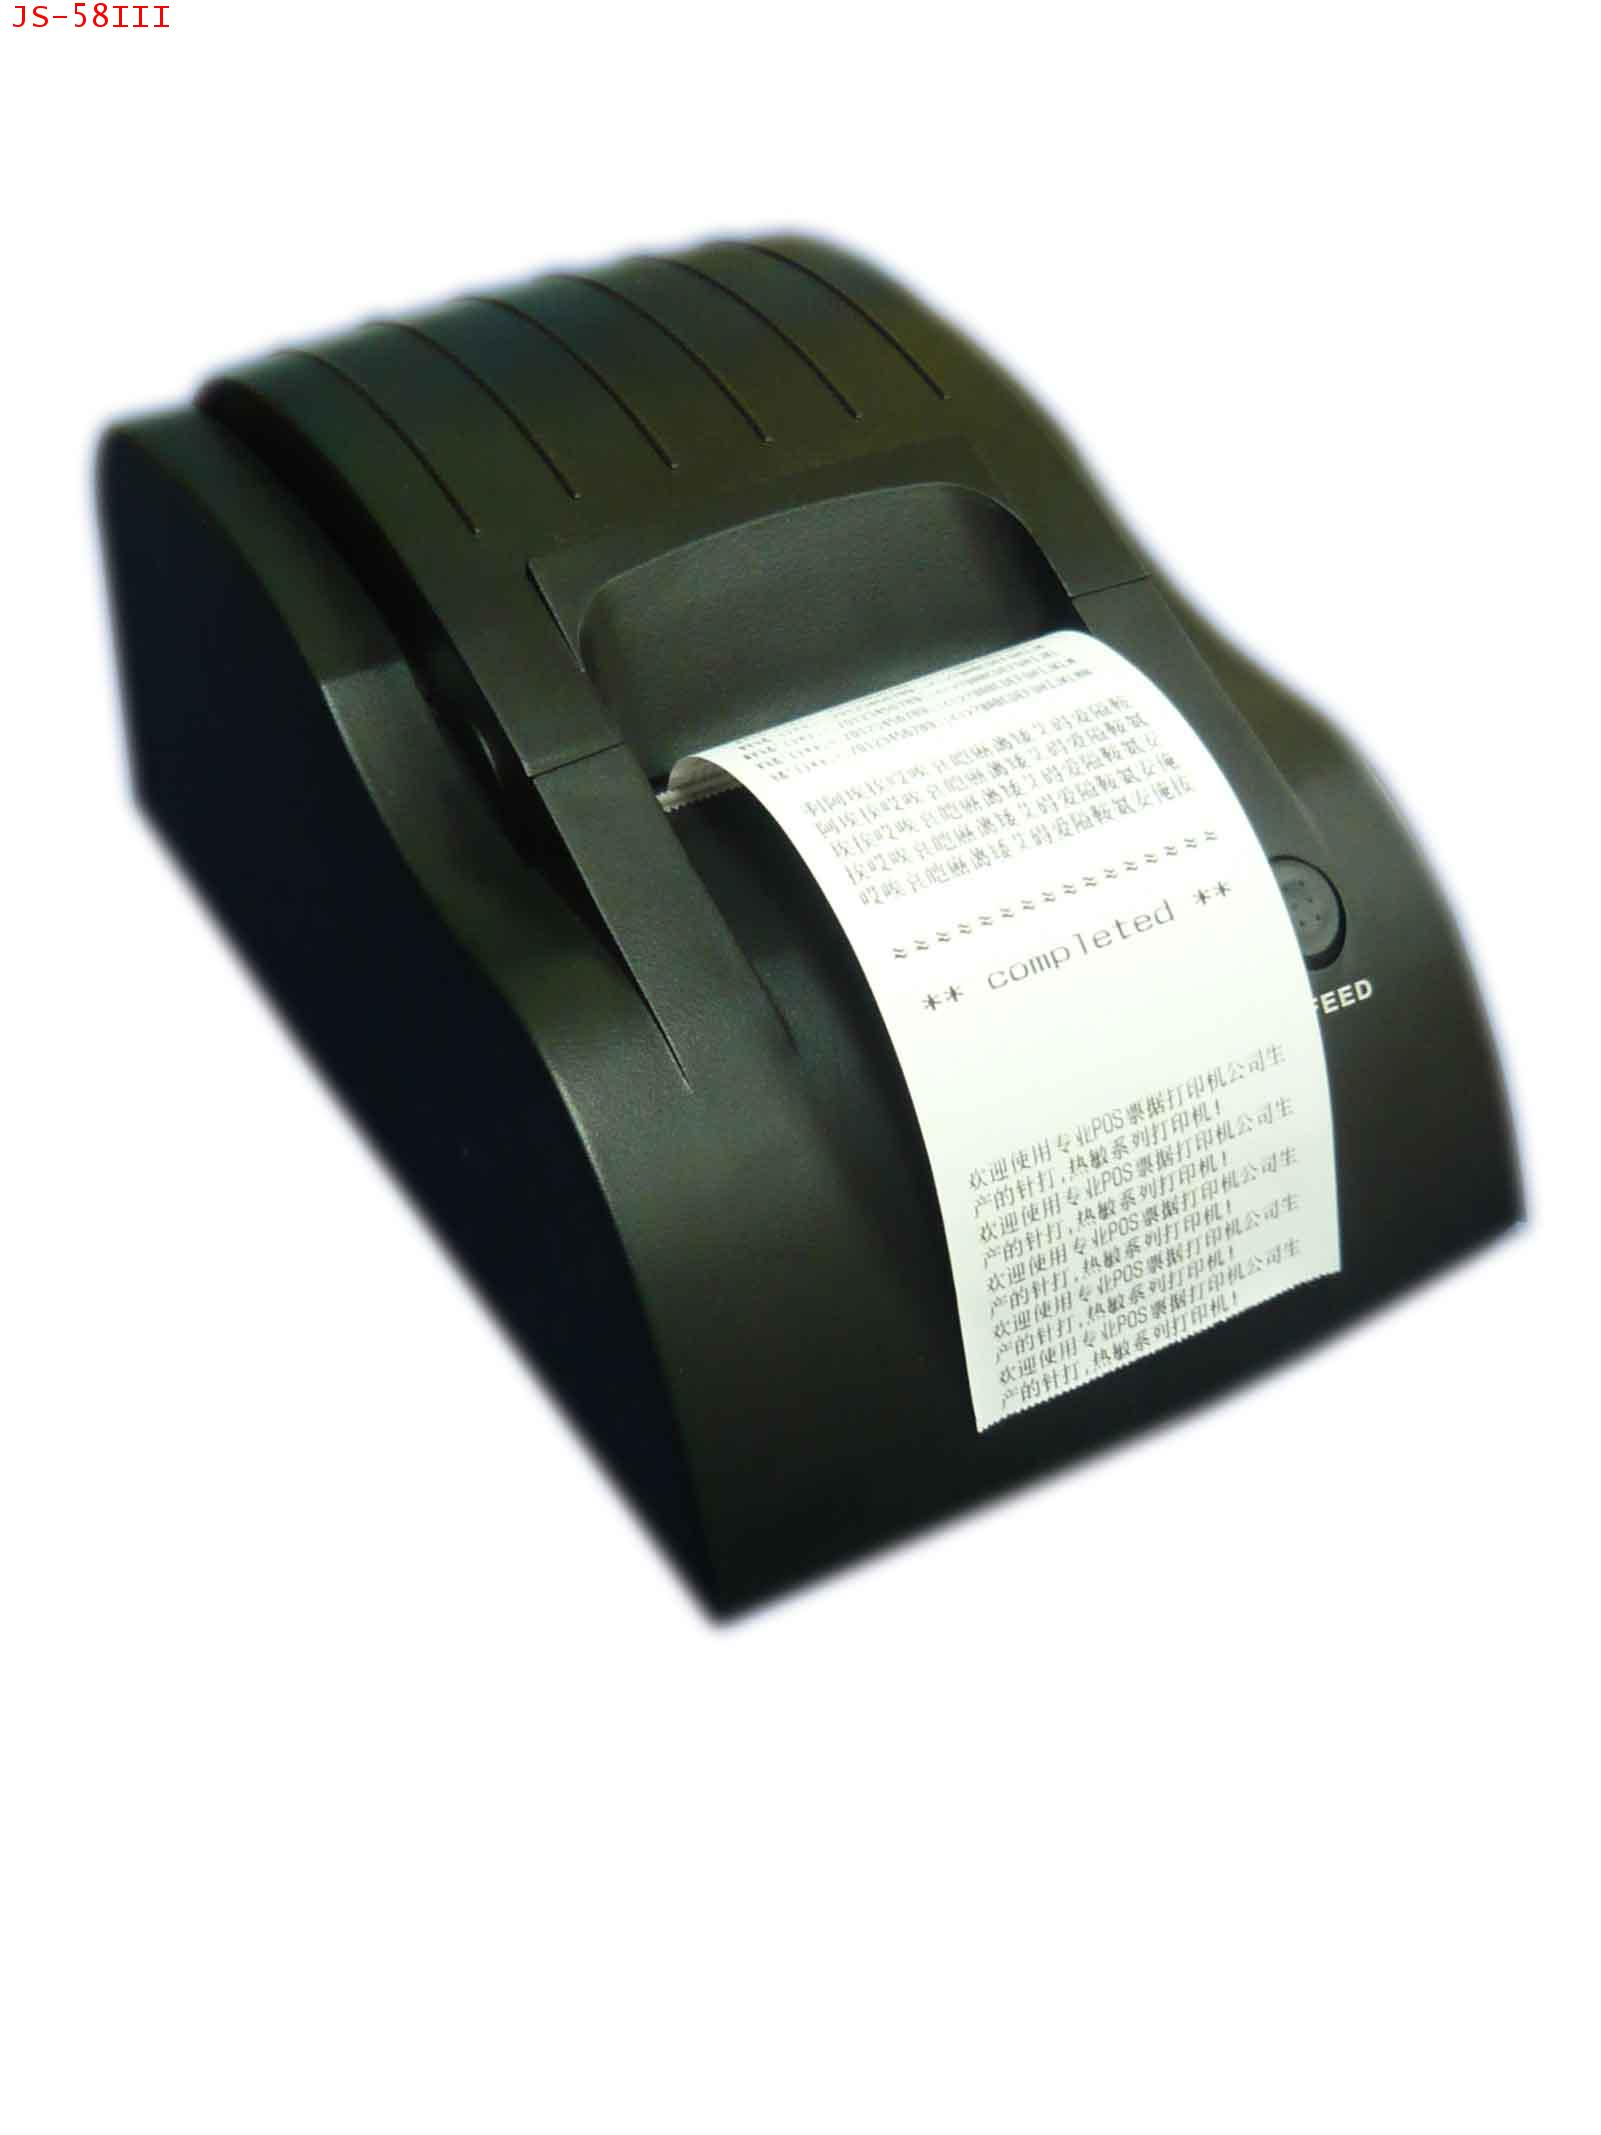 Thermal receipt printer JS-58III